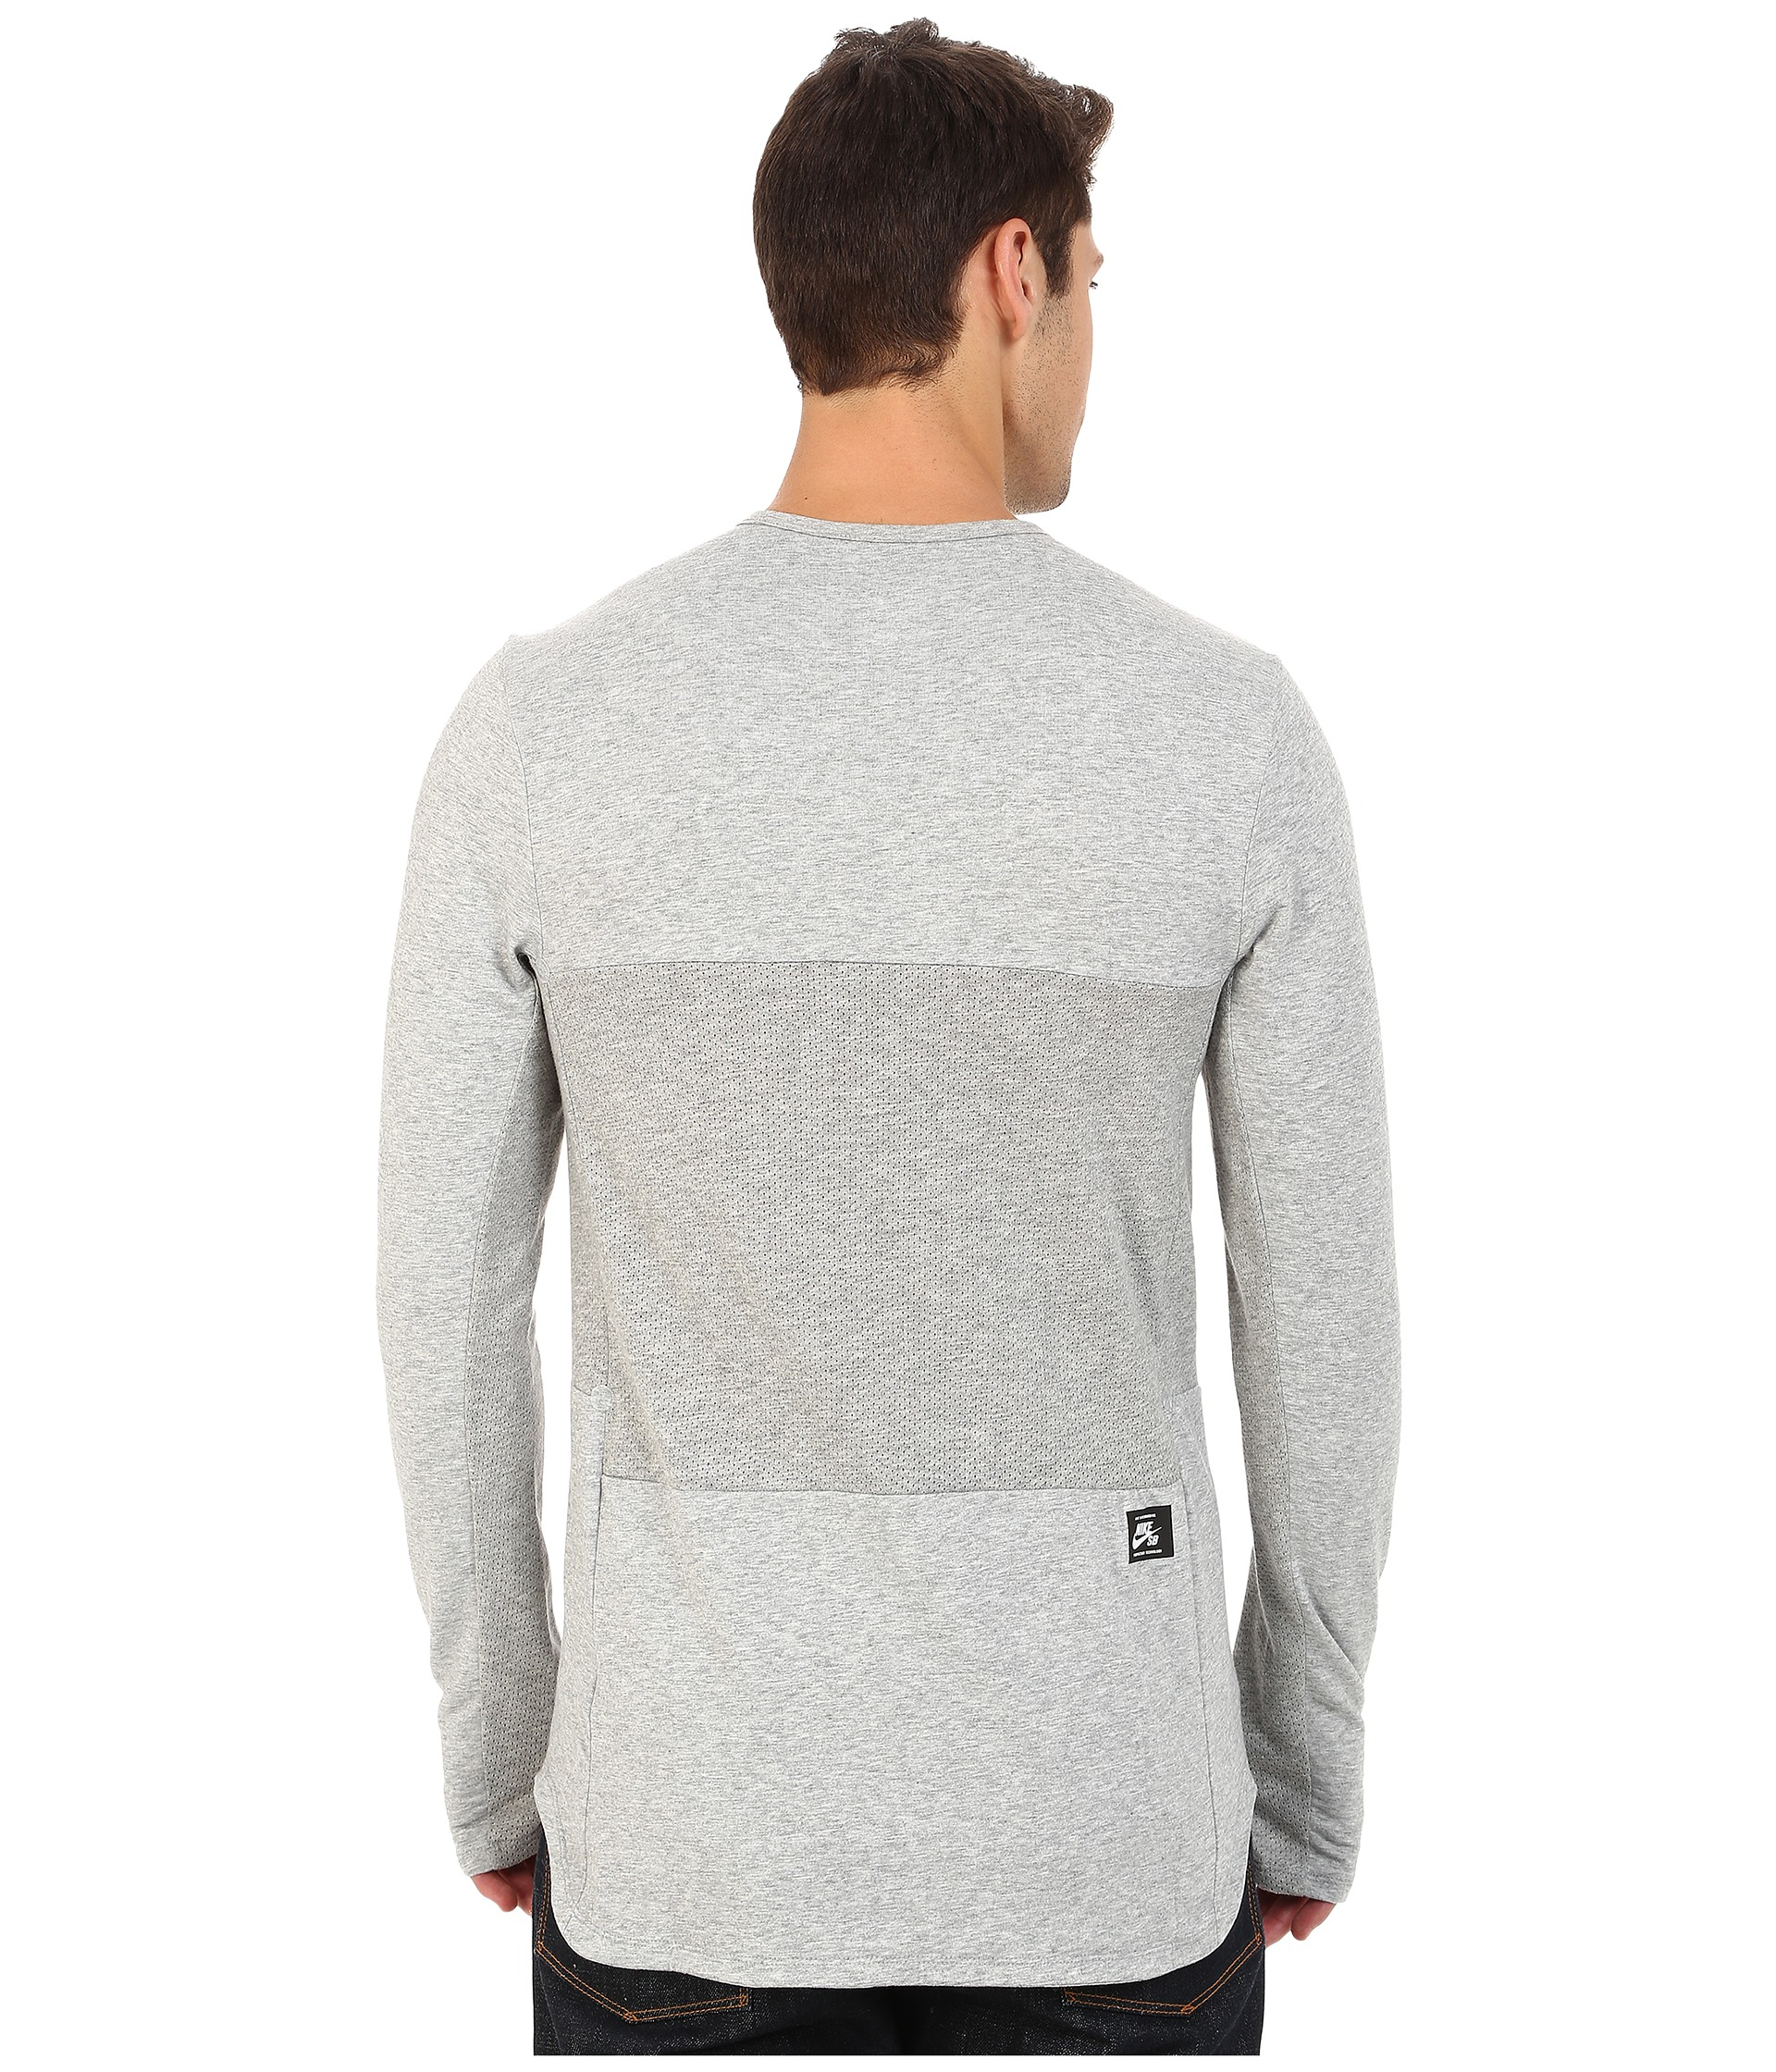 8c56a499 Nike Sb Skyline Dri-fit™ Cool Long Sleeve Crew in Gray for Men - Lyst